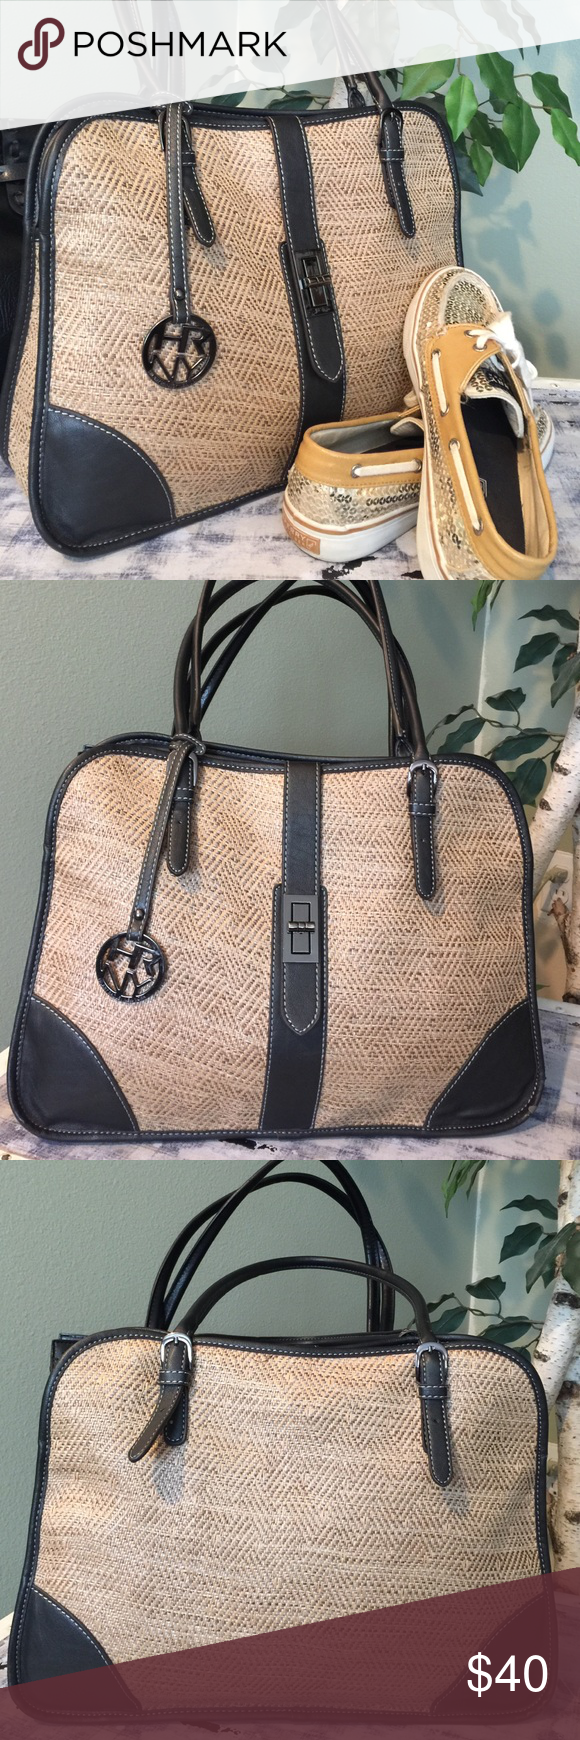 4f1b362e3195 👛saw on ebay for $45👛 perfect! soft! knot design